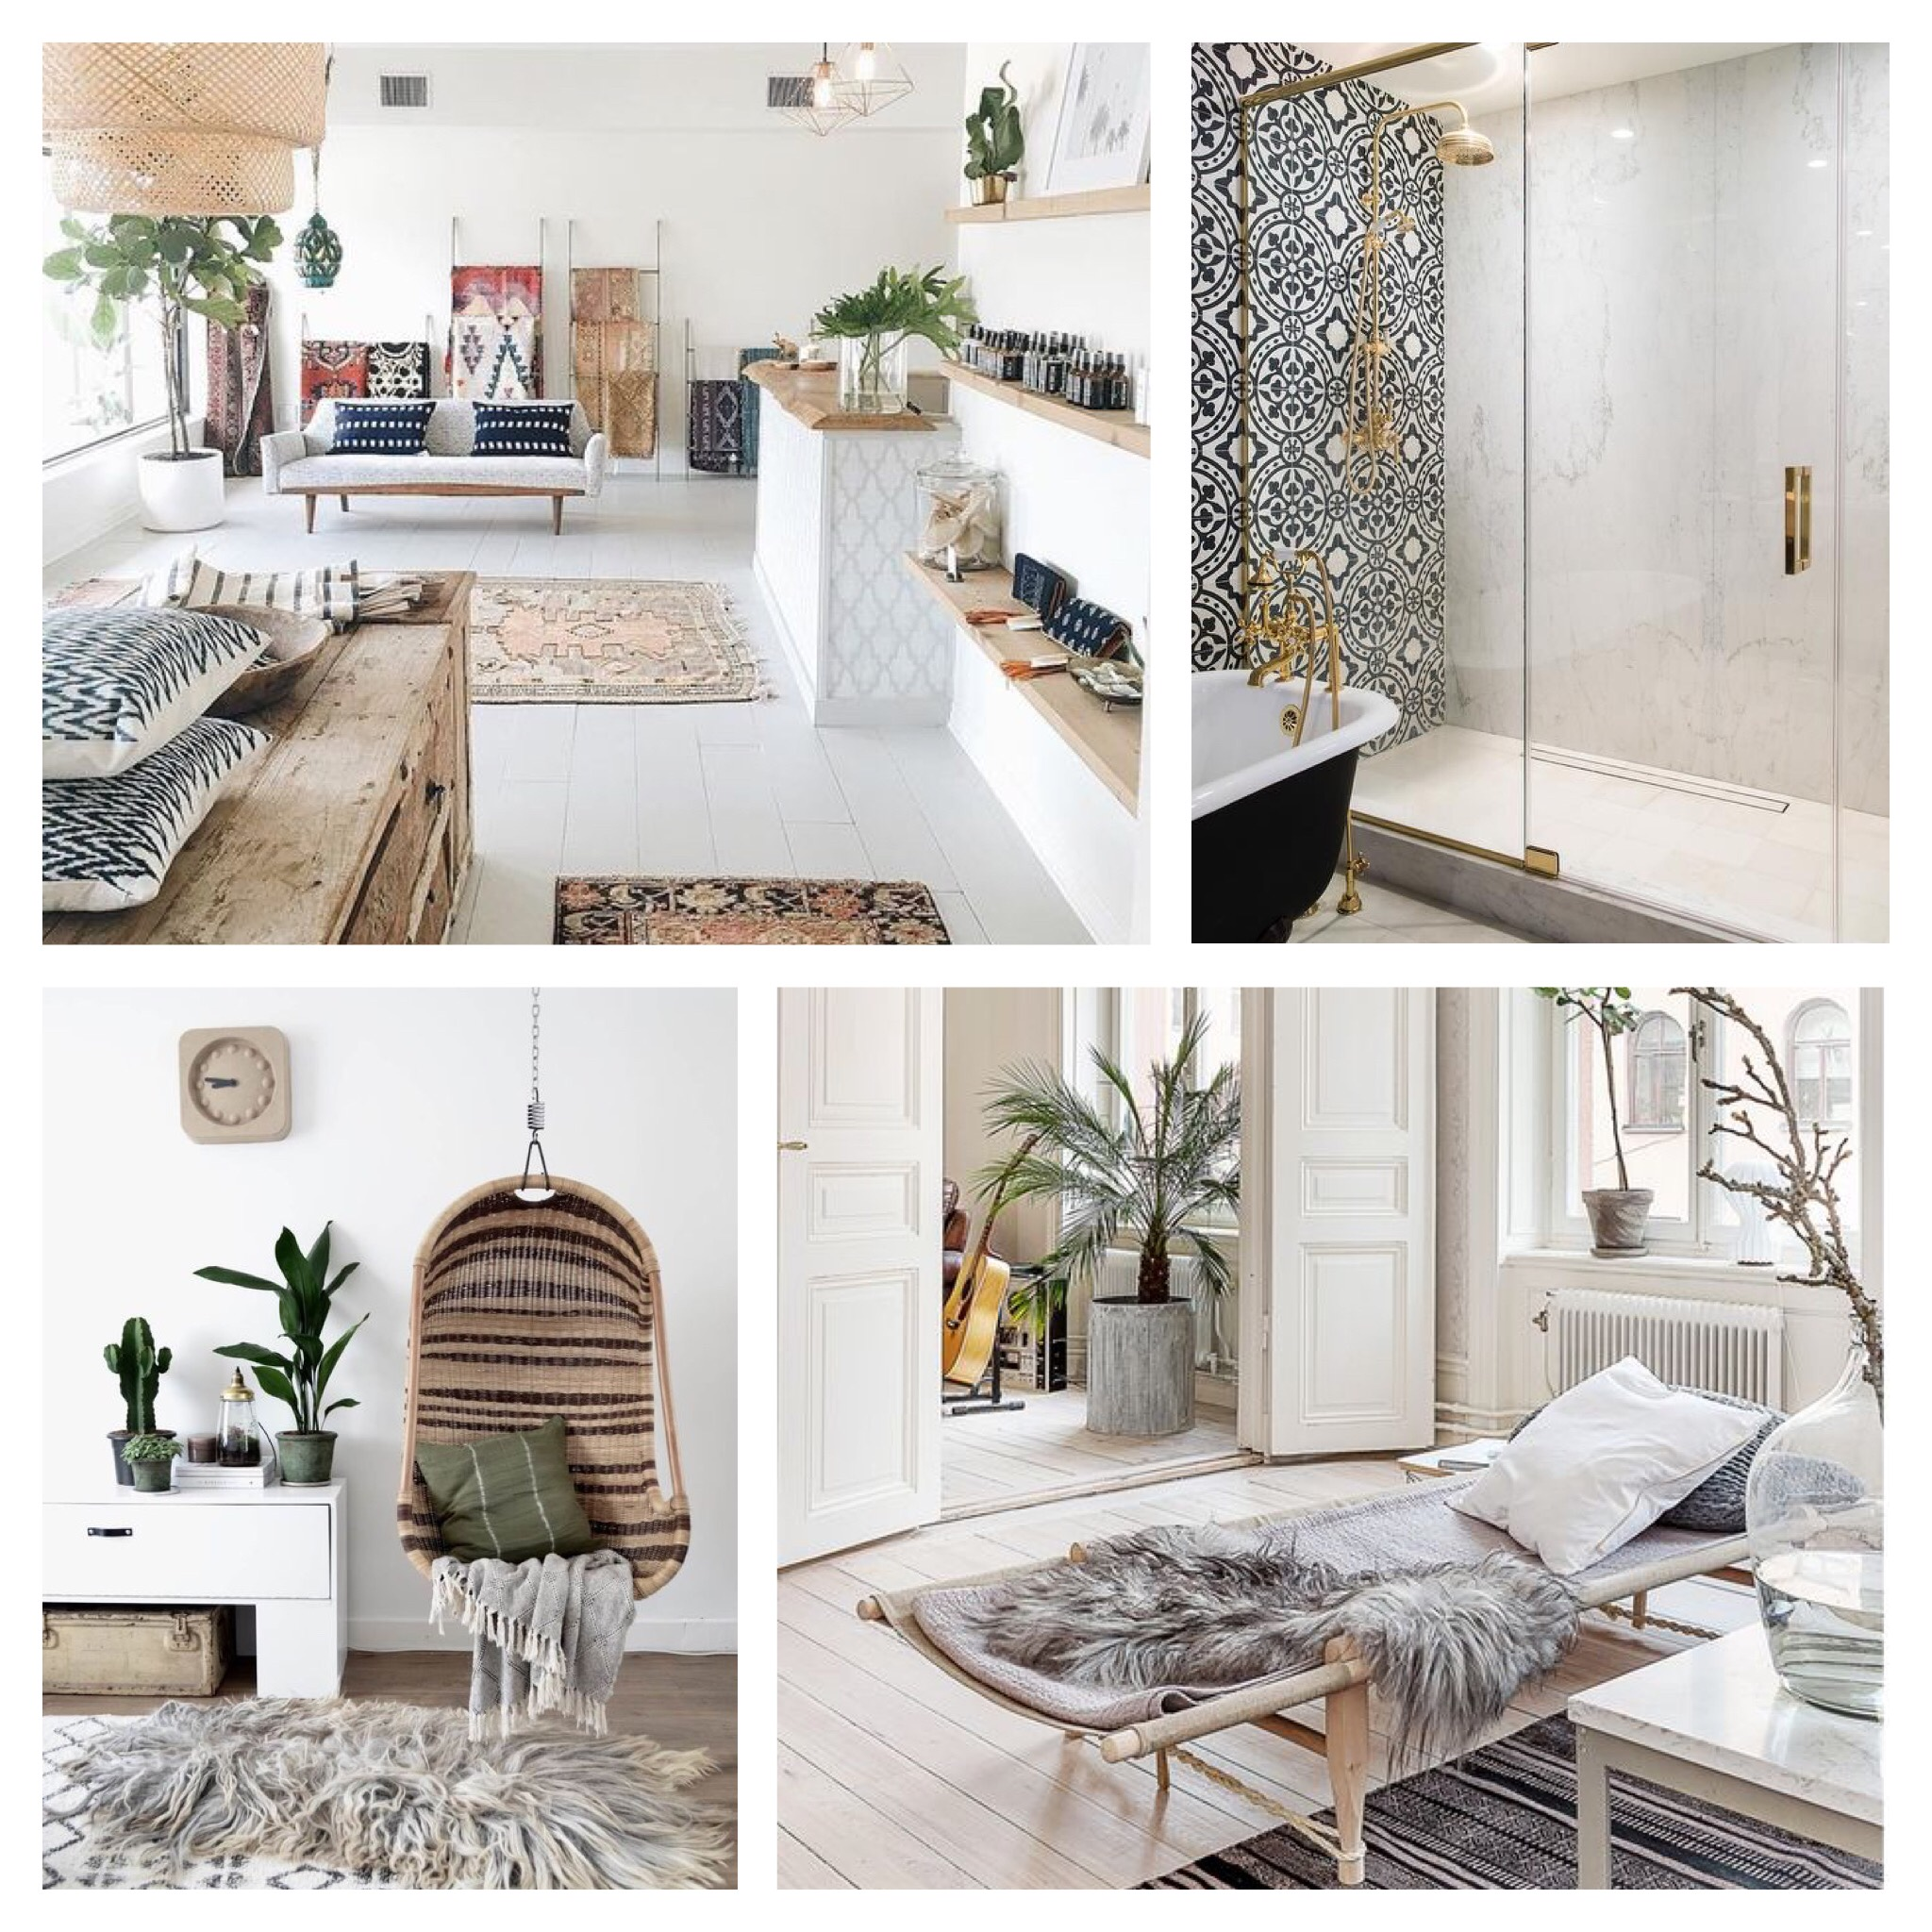 Inspirations for a neutral and bright home